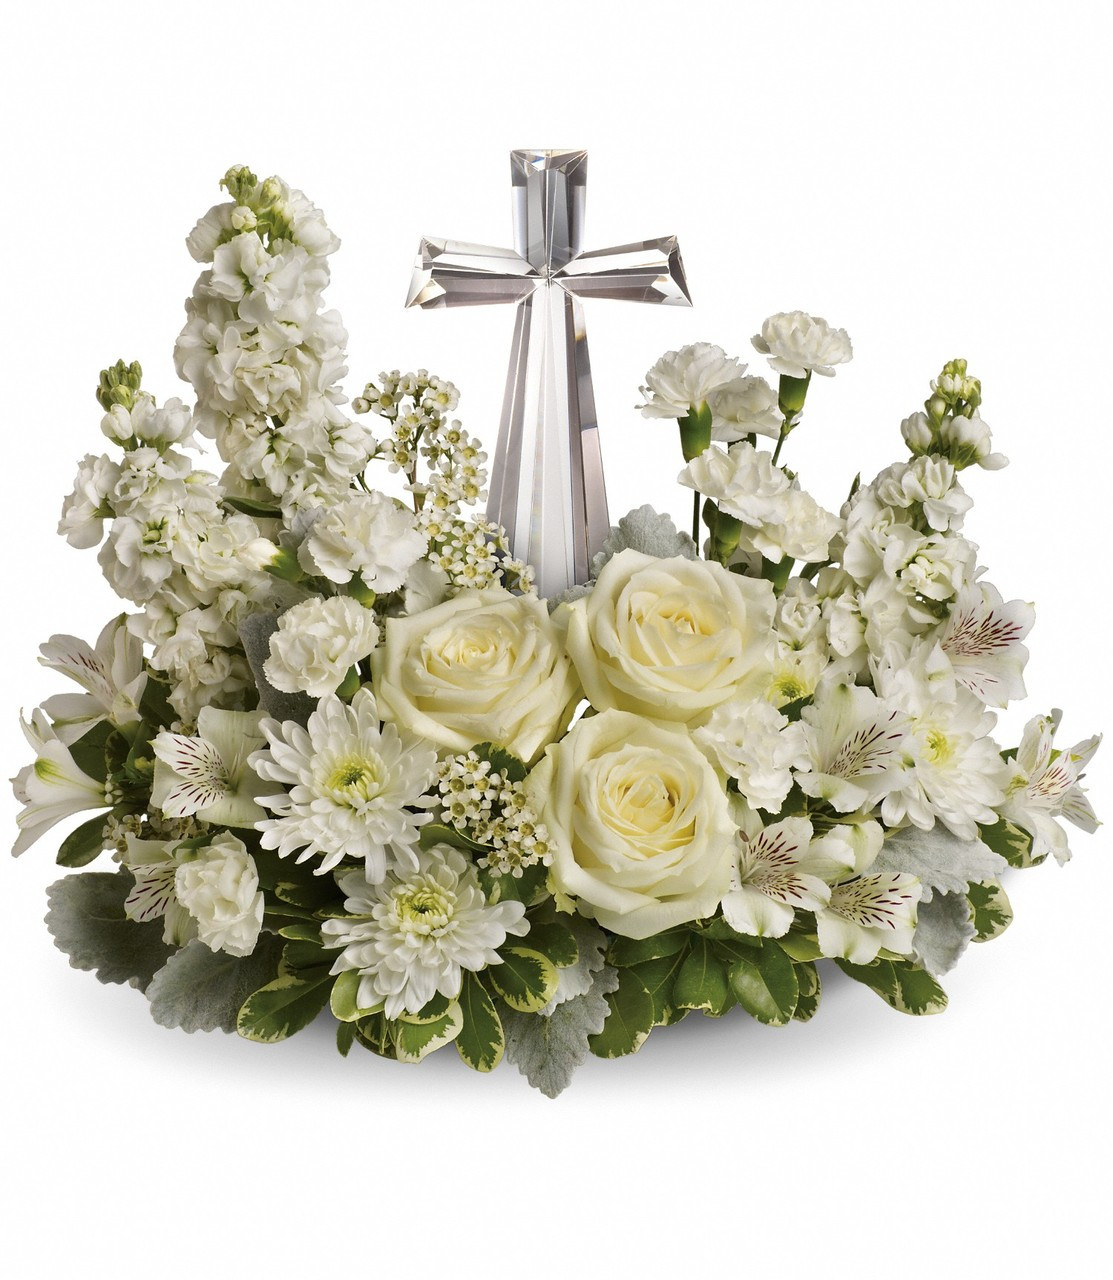 Crystal cross all white sympathy flower arrangement by enchanted florist divine peace crystal cross sympathy flowers by enchanted florist pasadena tx all white roses and izmirmasajfo Image collections